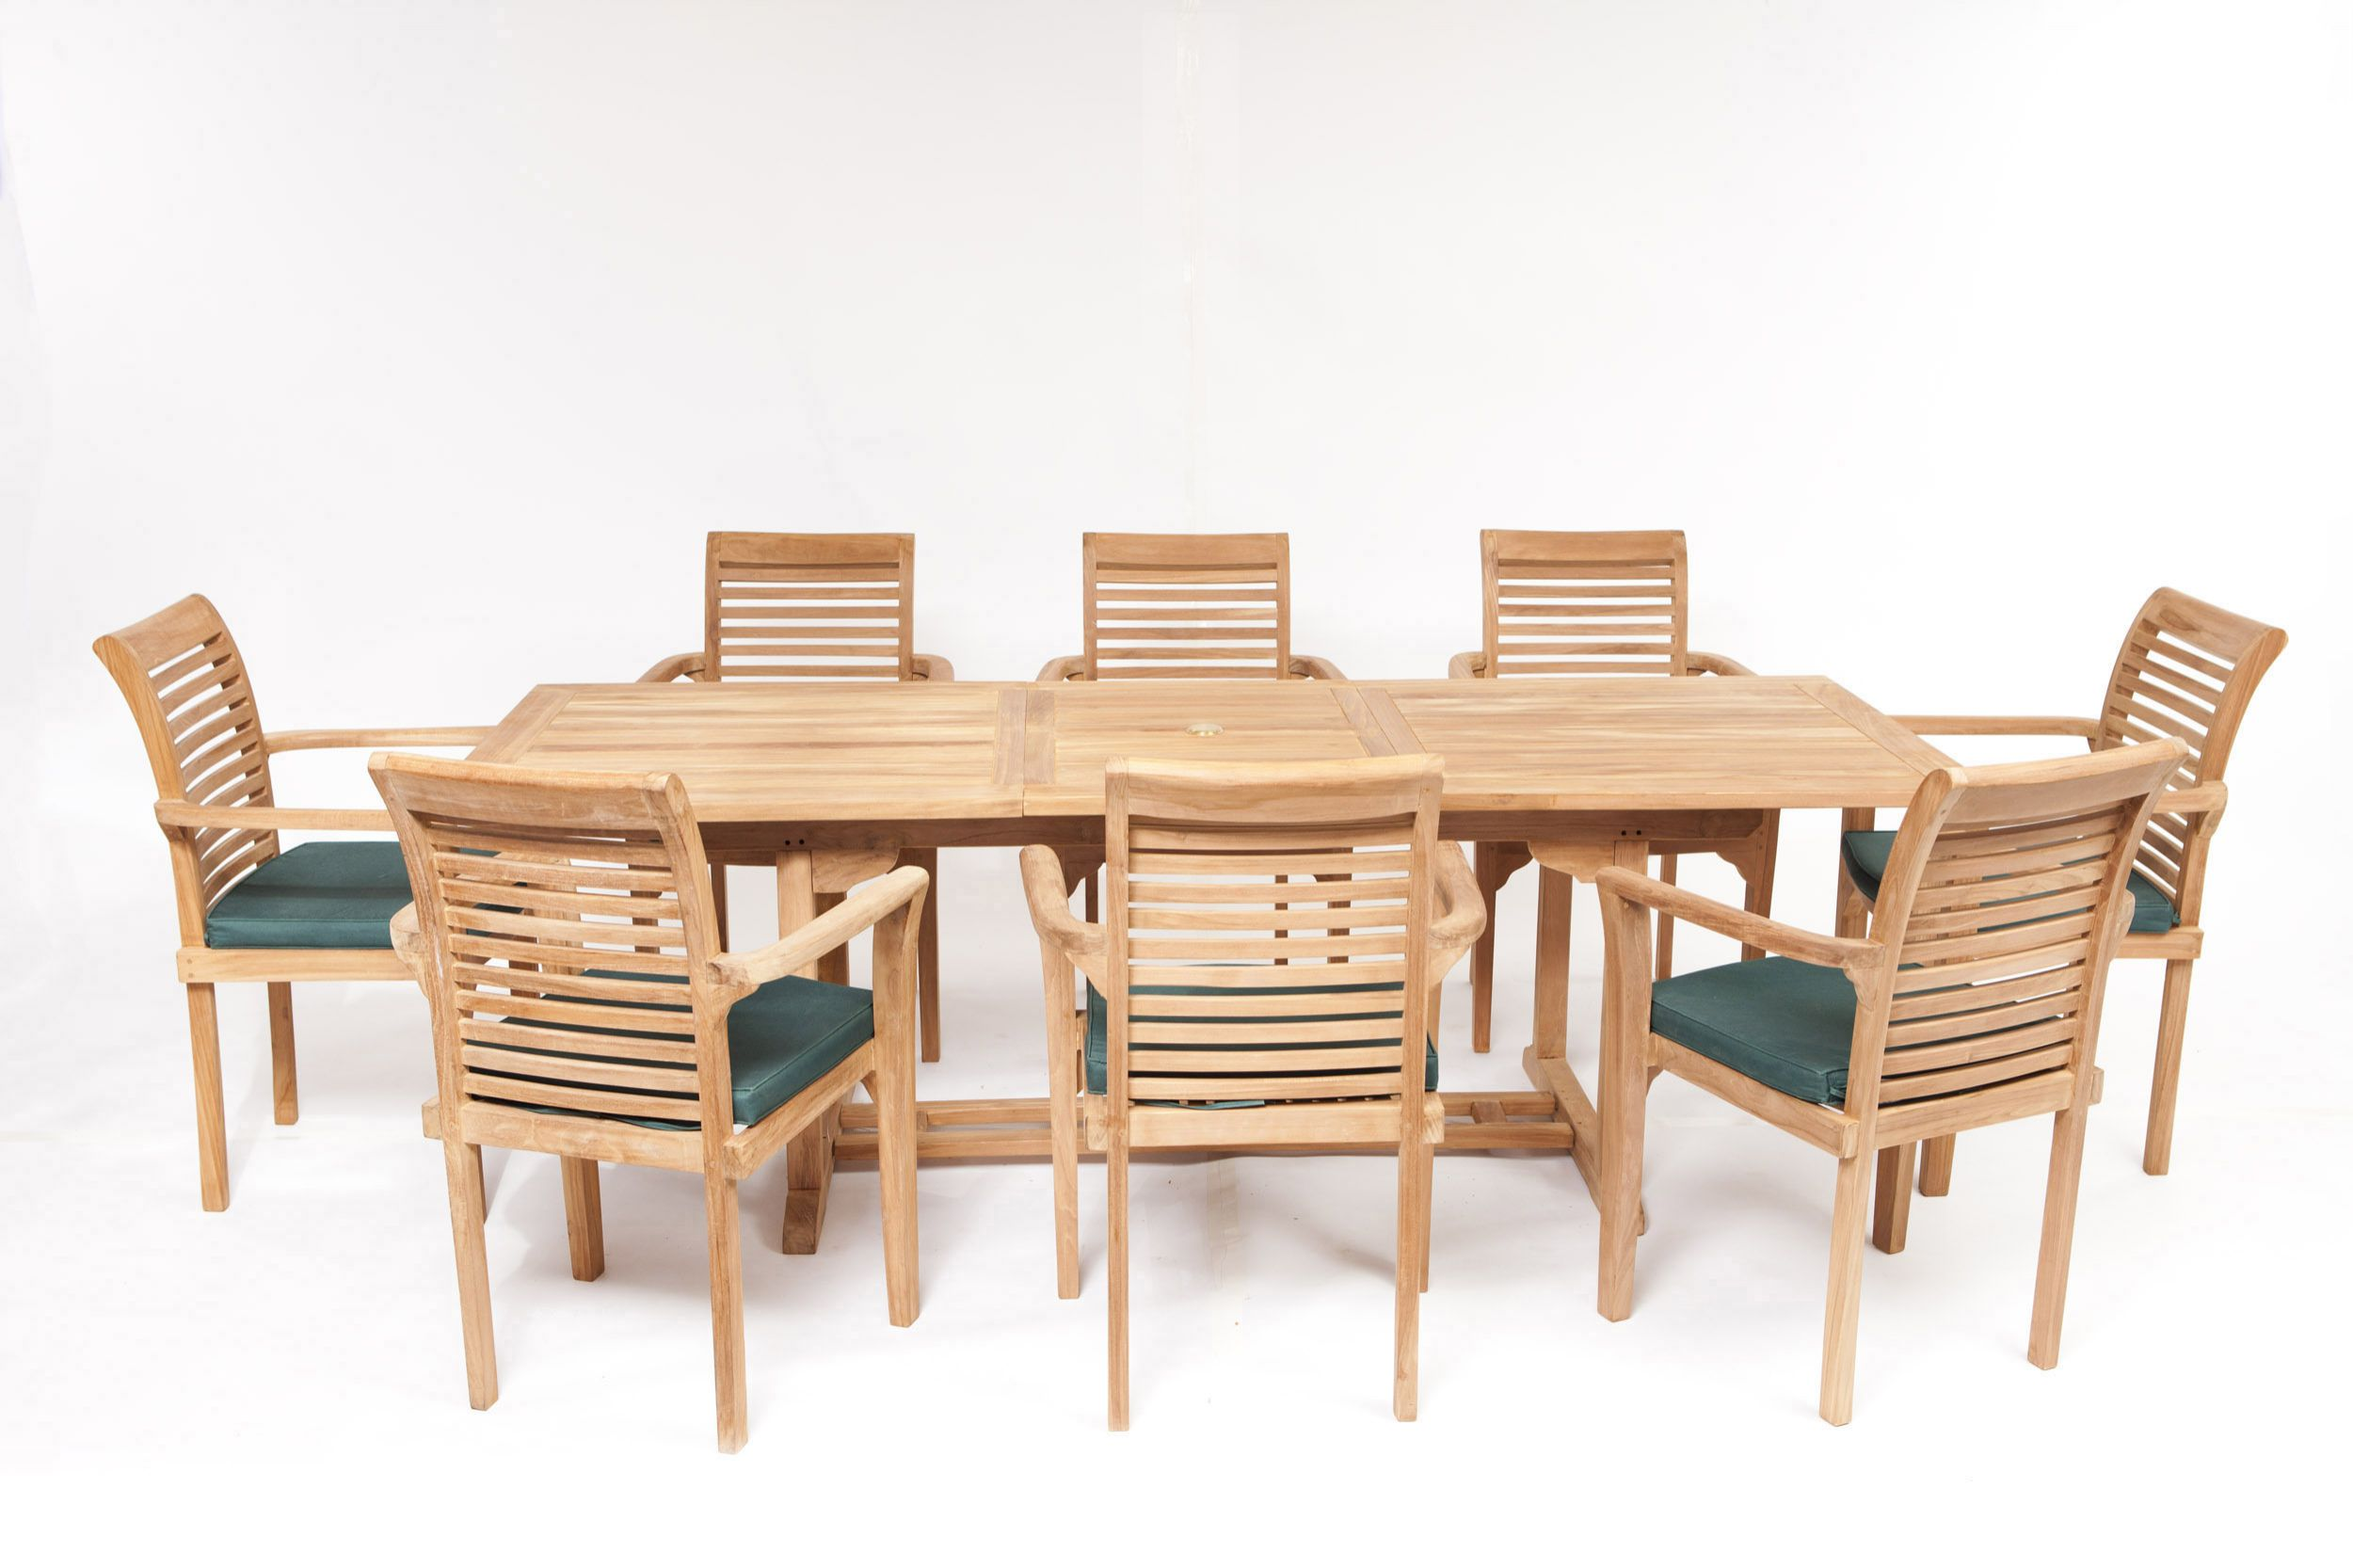 teak table and chairs garden boon flair high chair review geneva furniture set humber imports uk